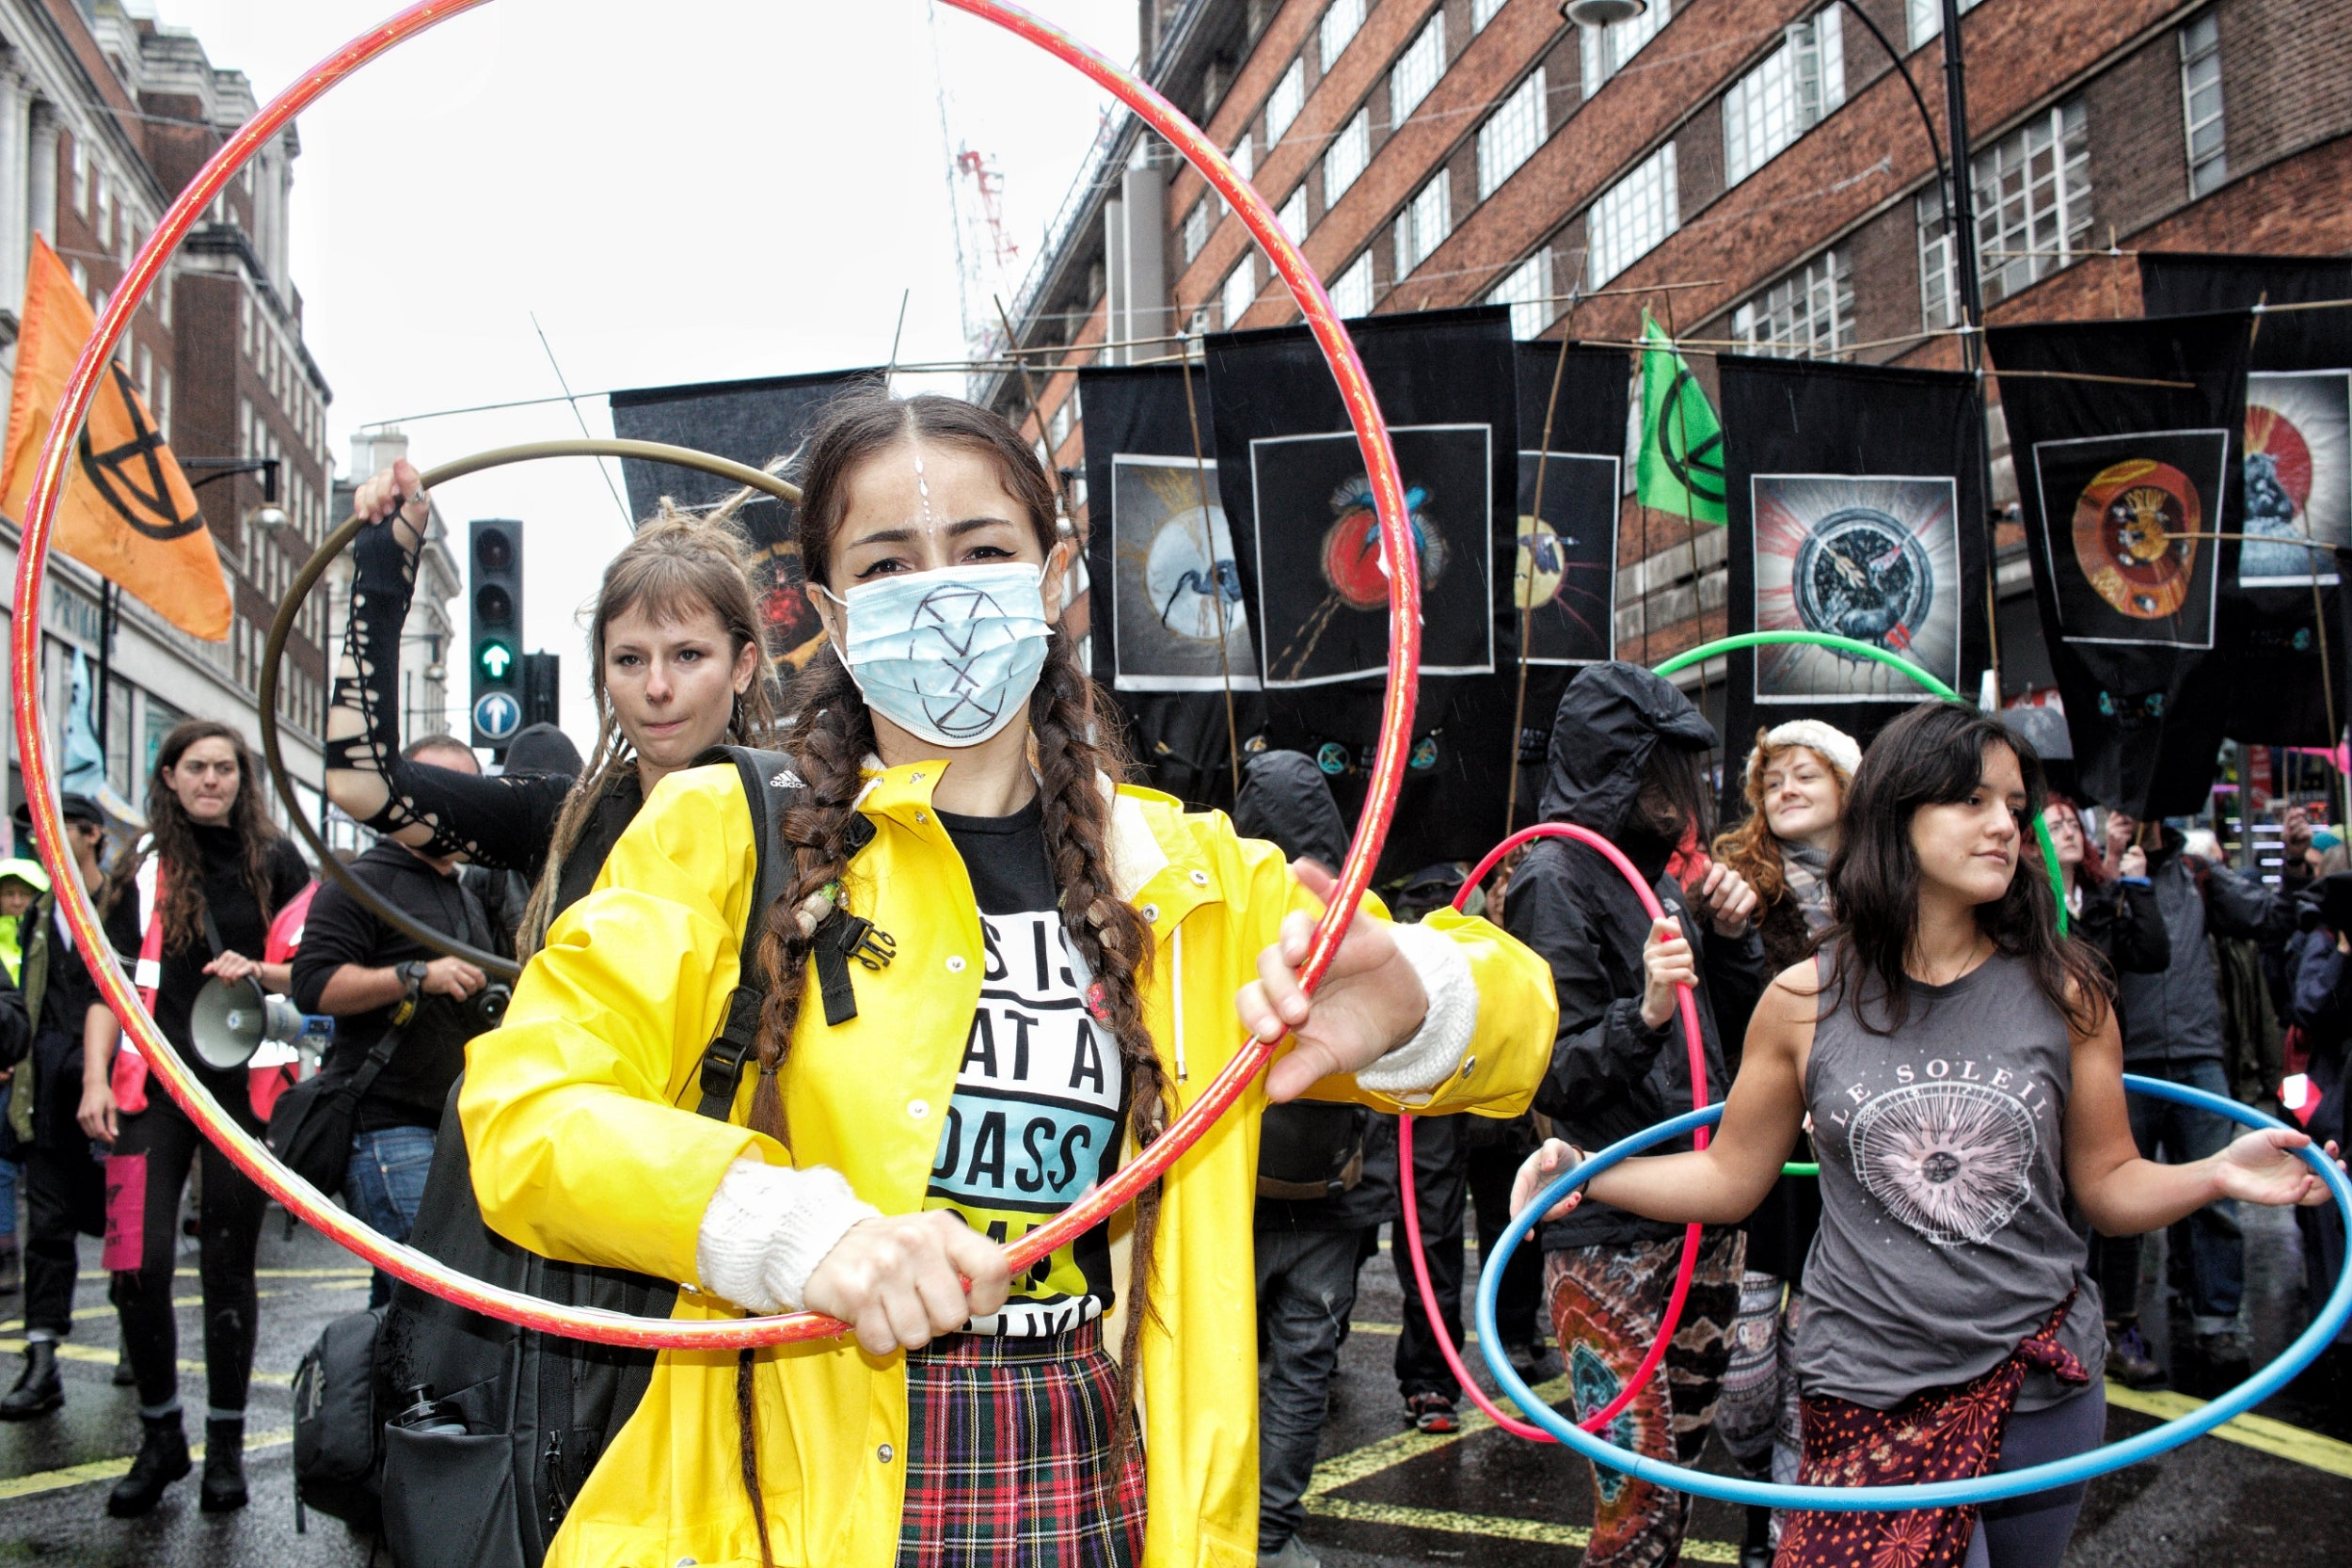 Extinction Rebellion's hapless stance on class and race is a depressing block to its climate justice goal